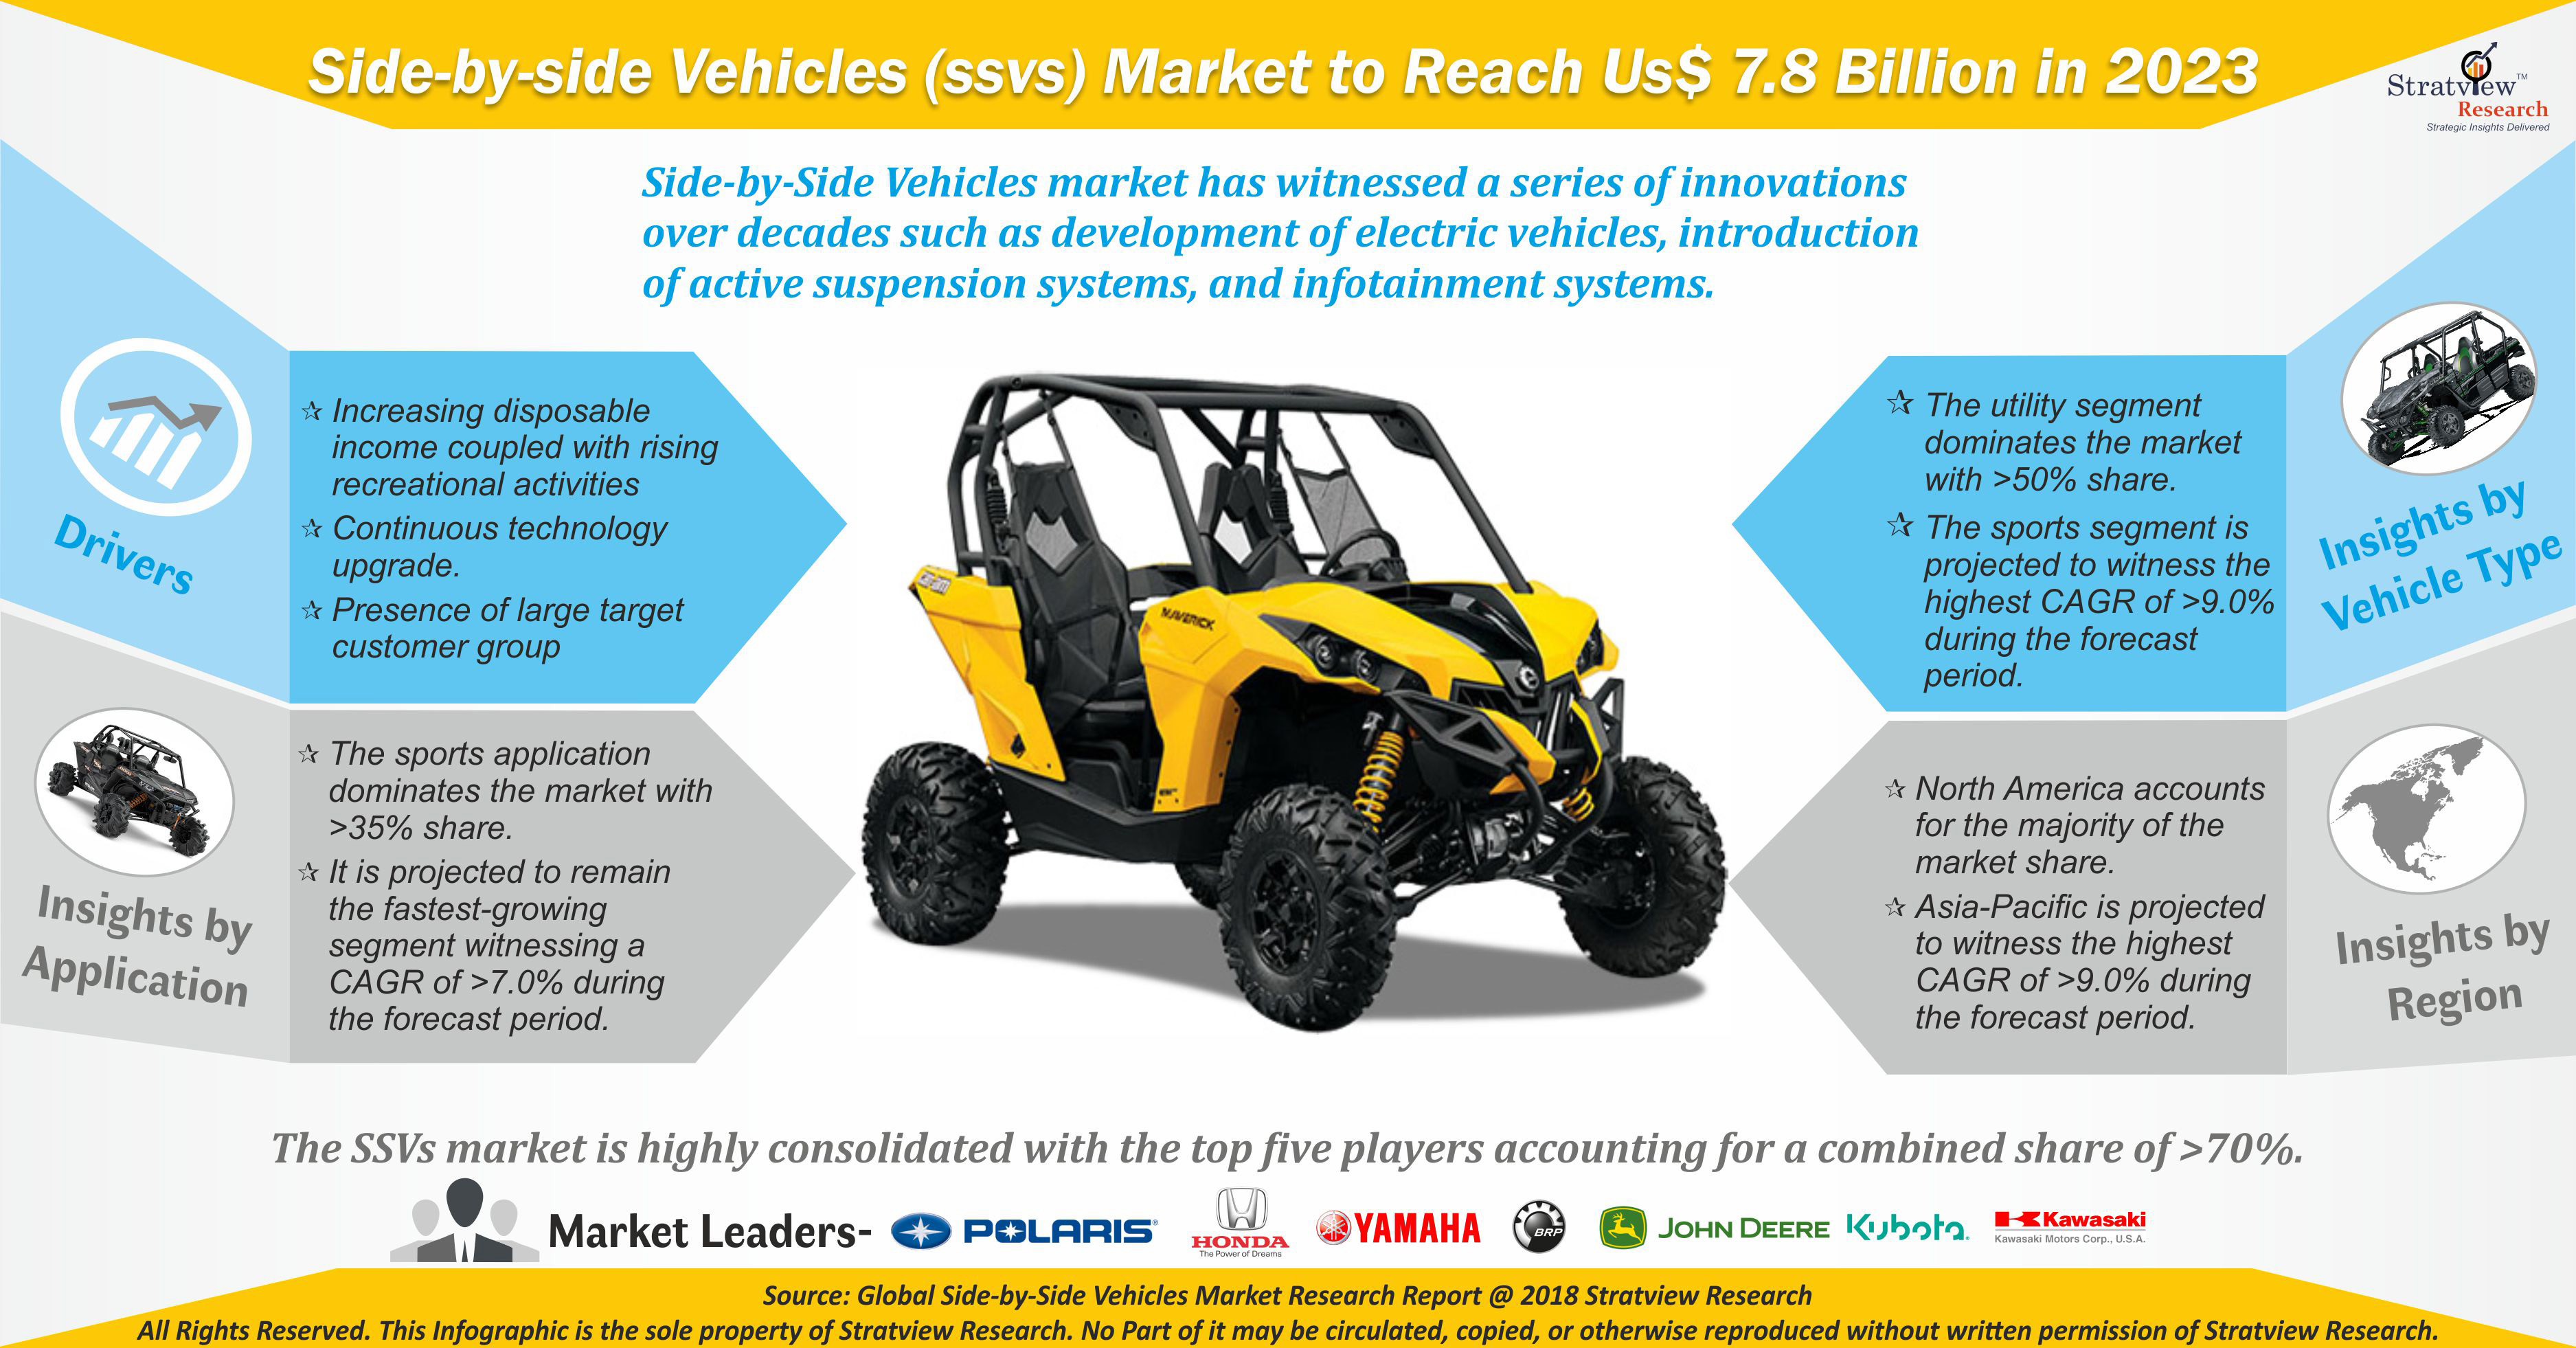 Side-by-Side Vehicles (SSVs) Market